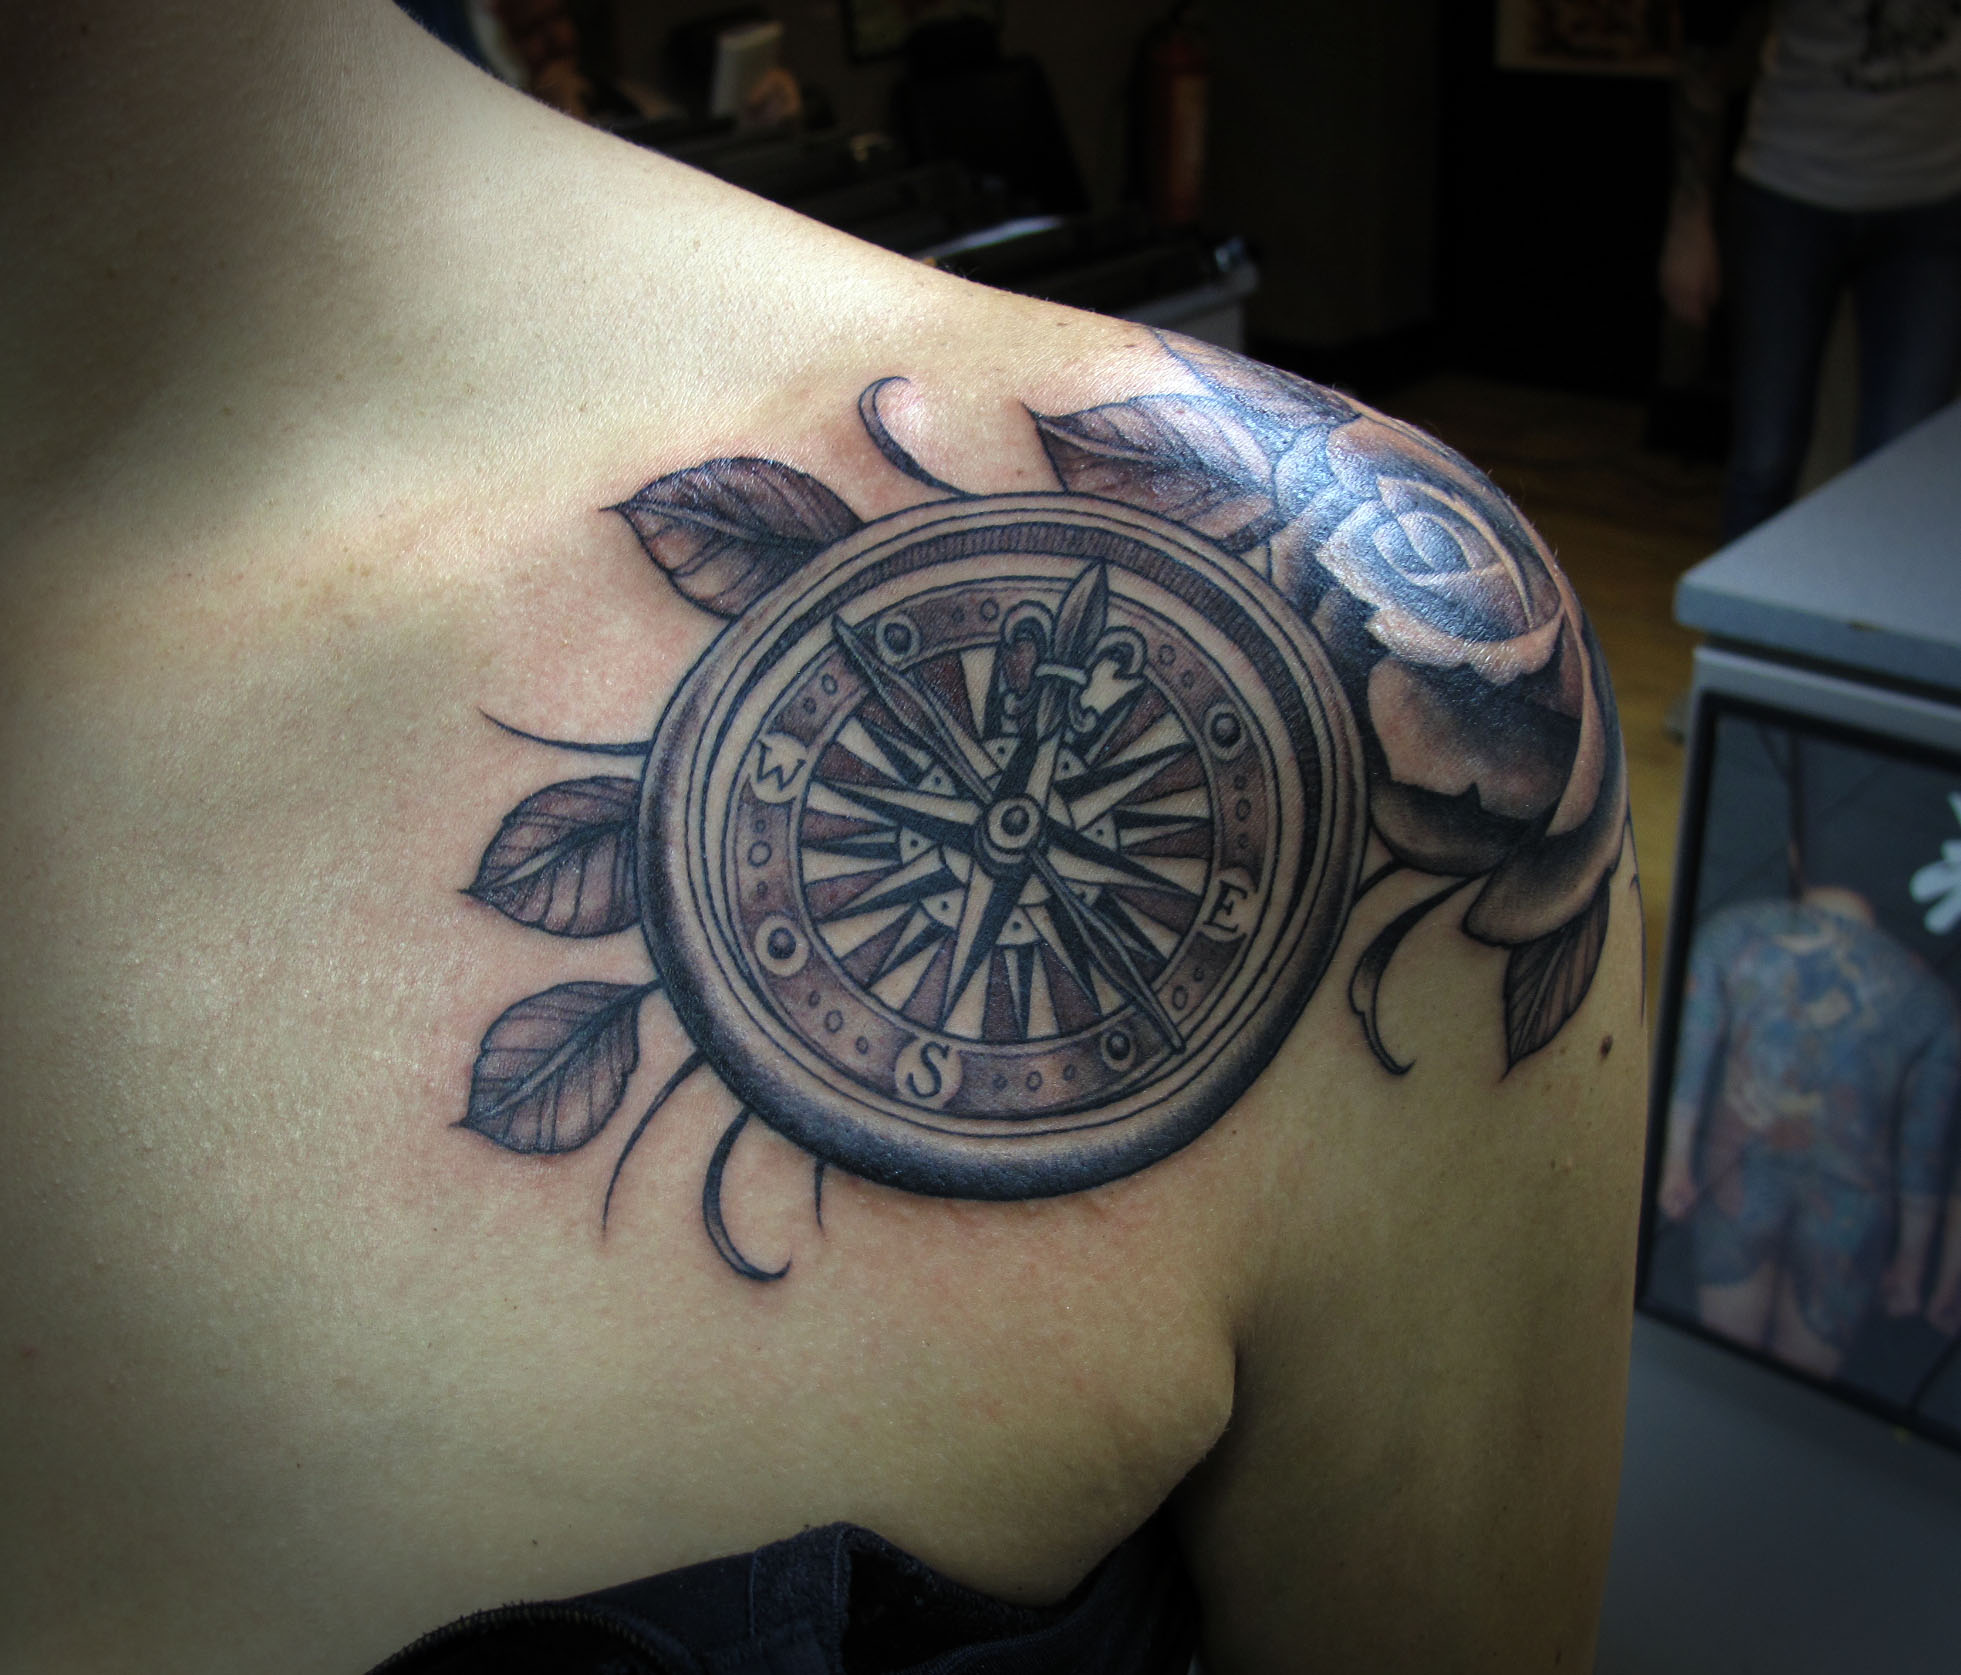 Tattoo Designs: Compass Tattoos Designs, Ideas And Meaning